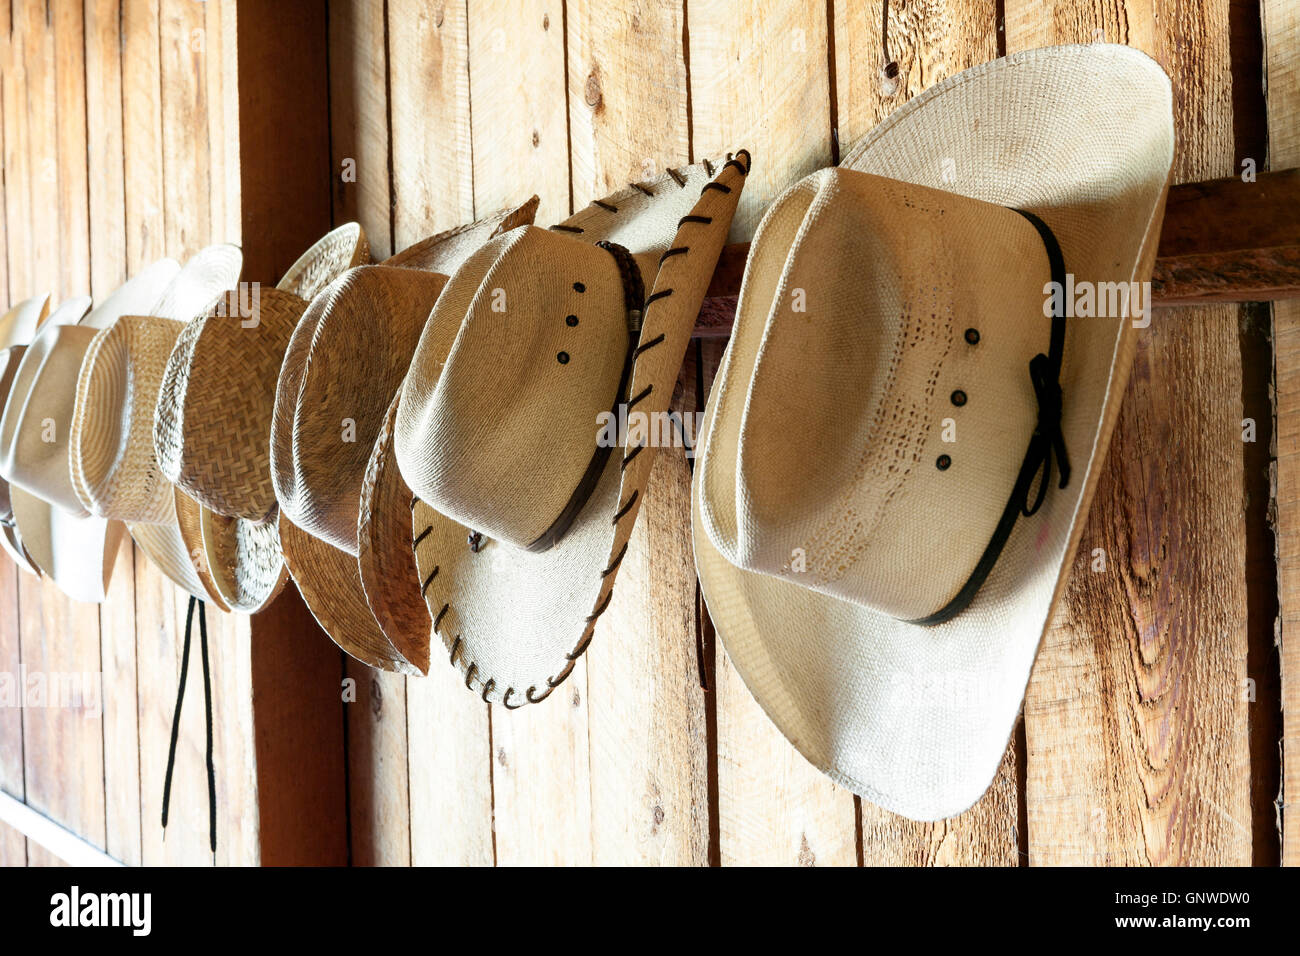 WY00980-00...WYOMING - Hats hung up in the hat and boot room at the CM Ranch near Dubois. - Stock Image